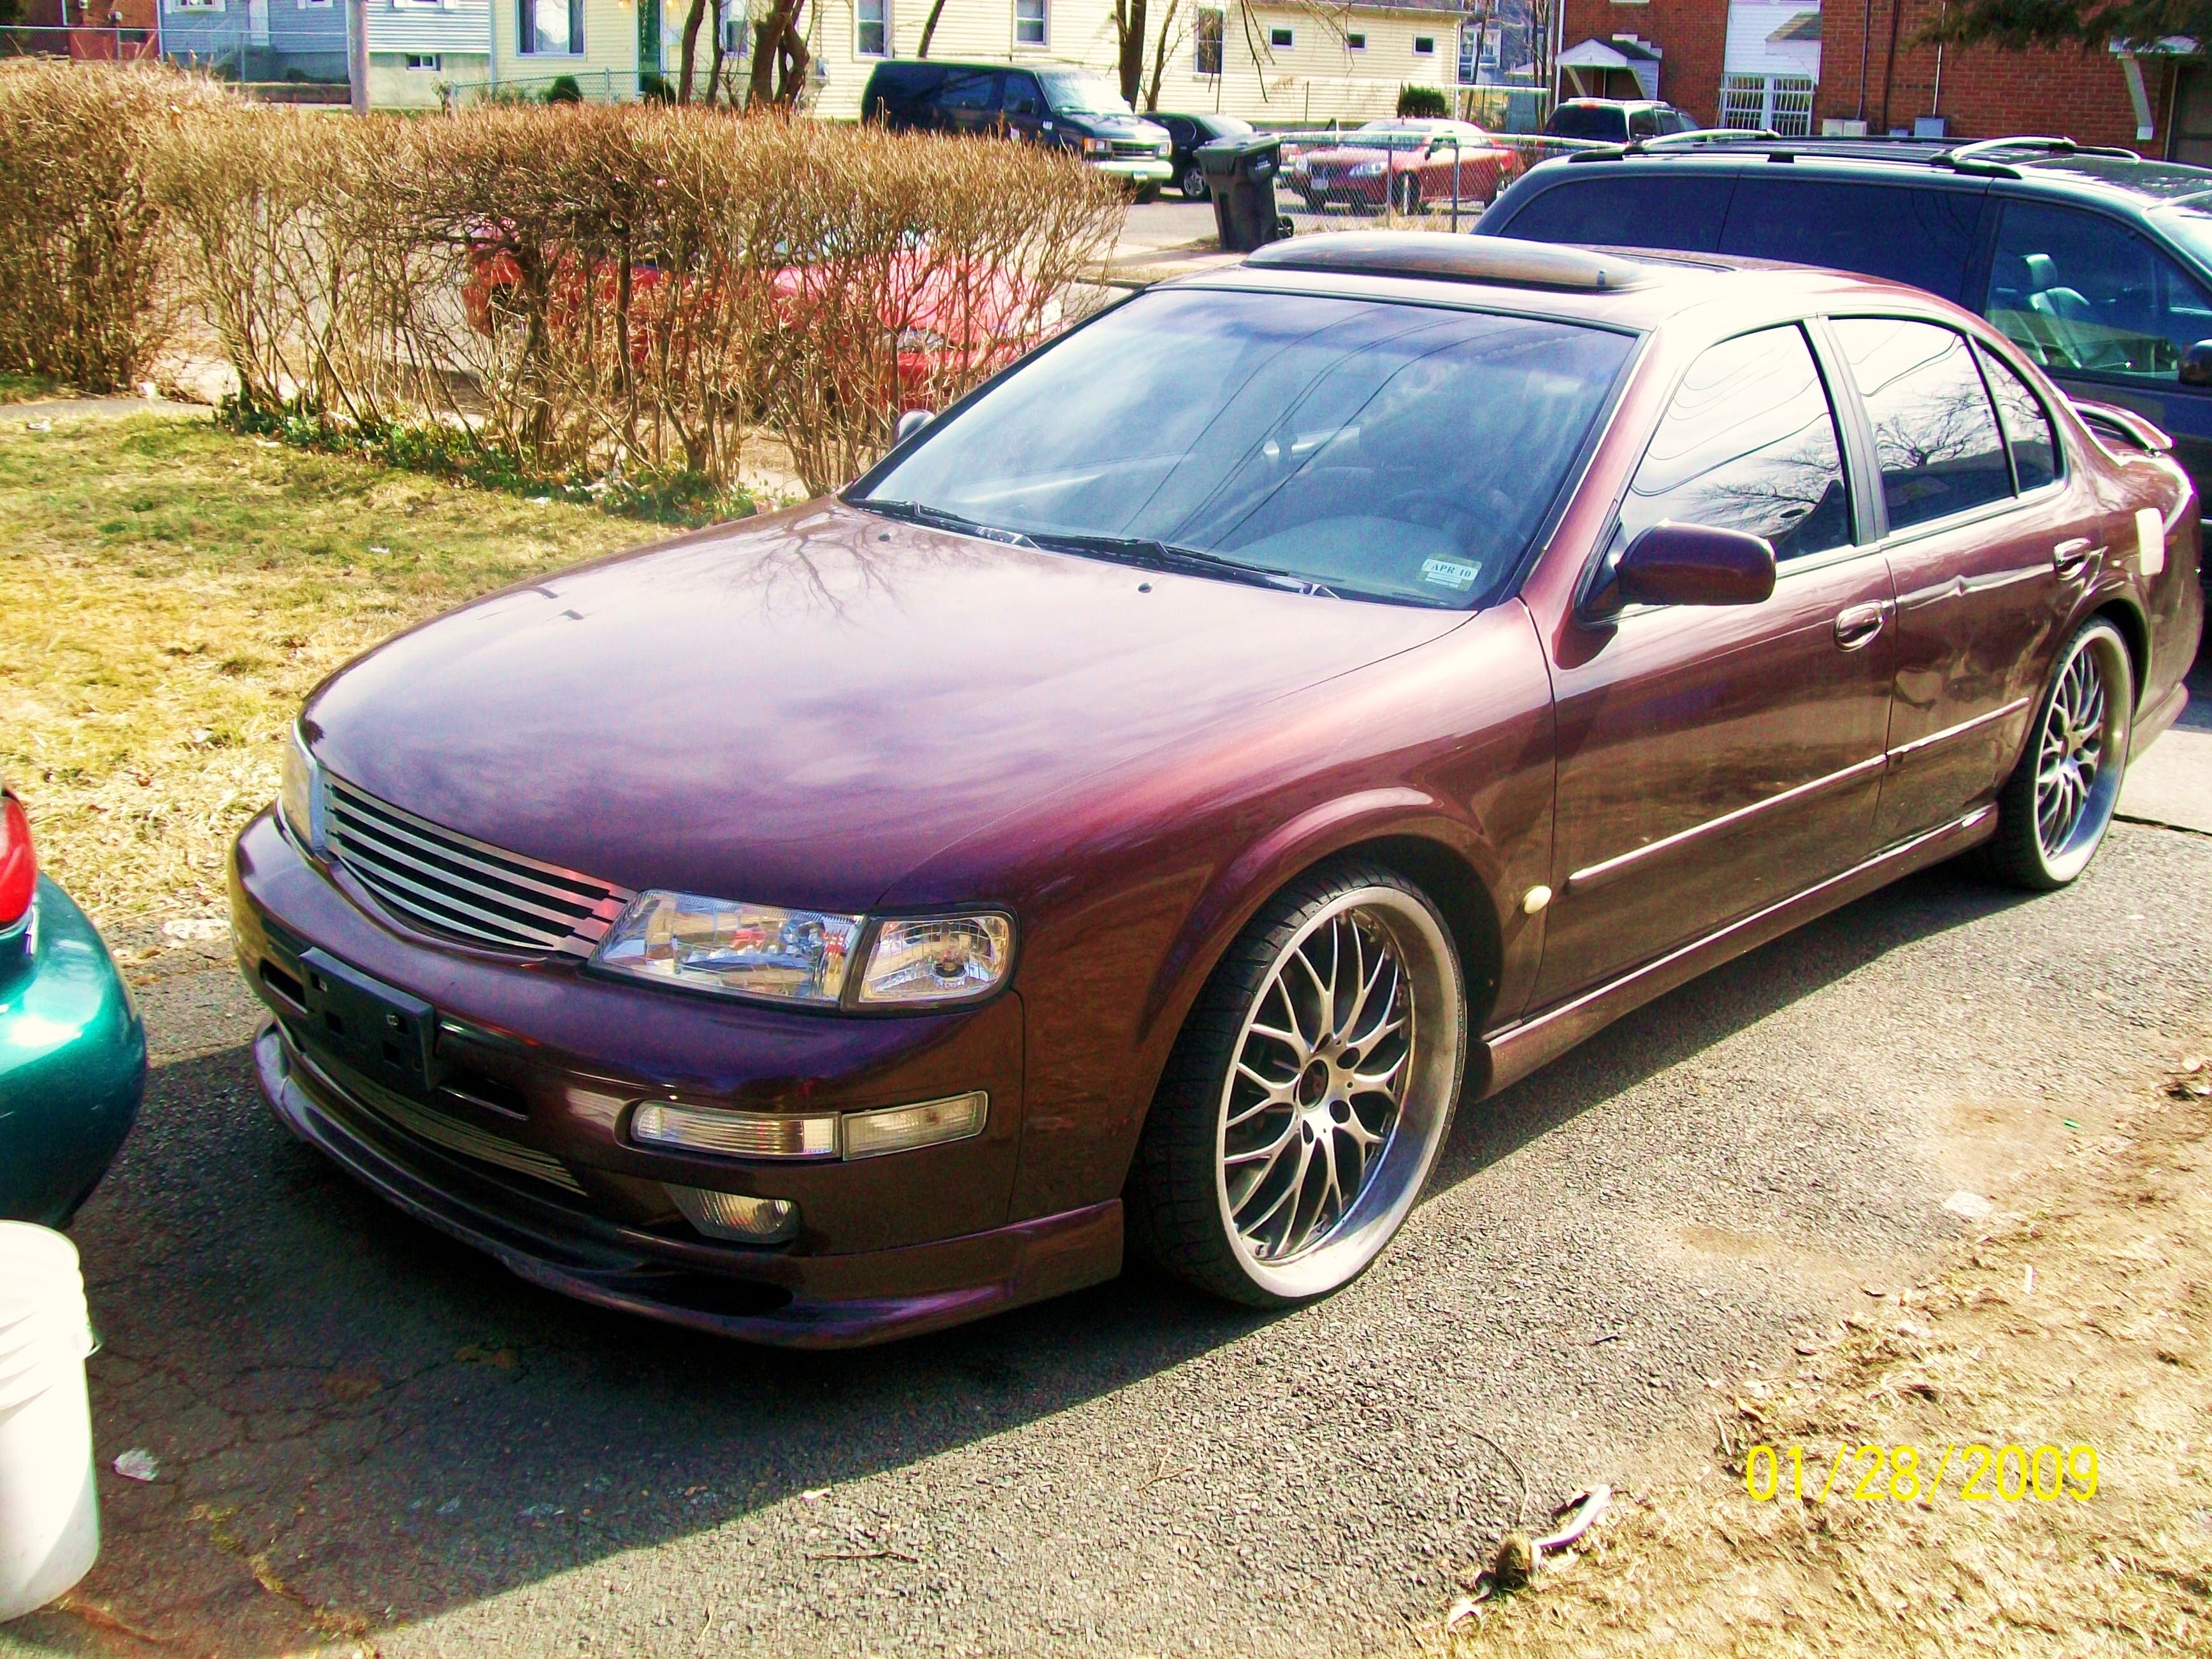 max-tune 1998 nissan maxima specs, photos, modification info at